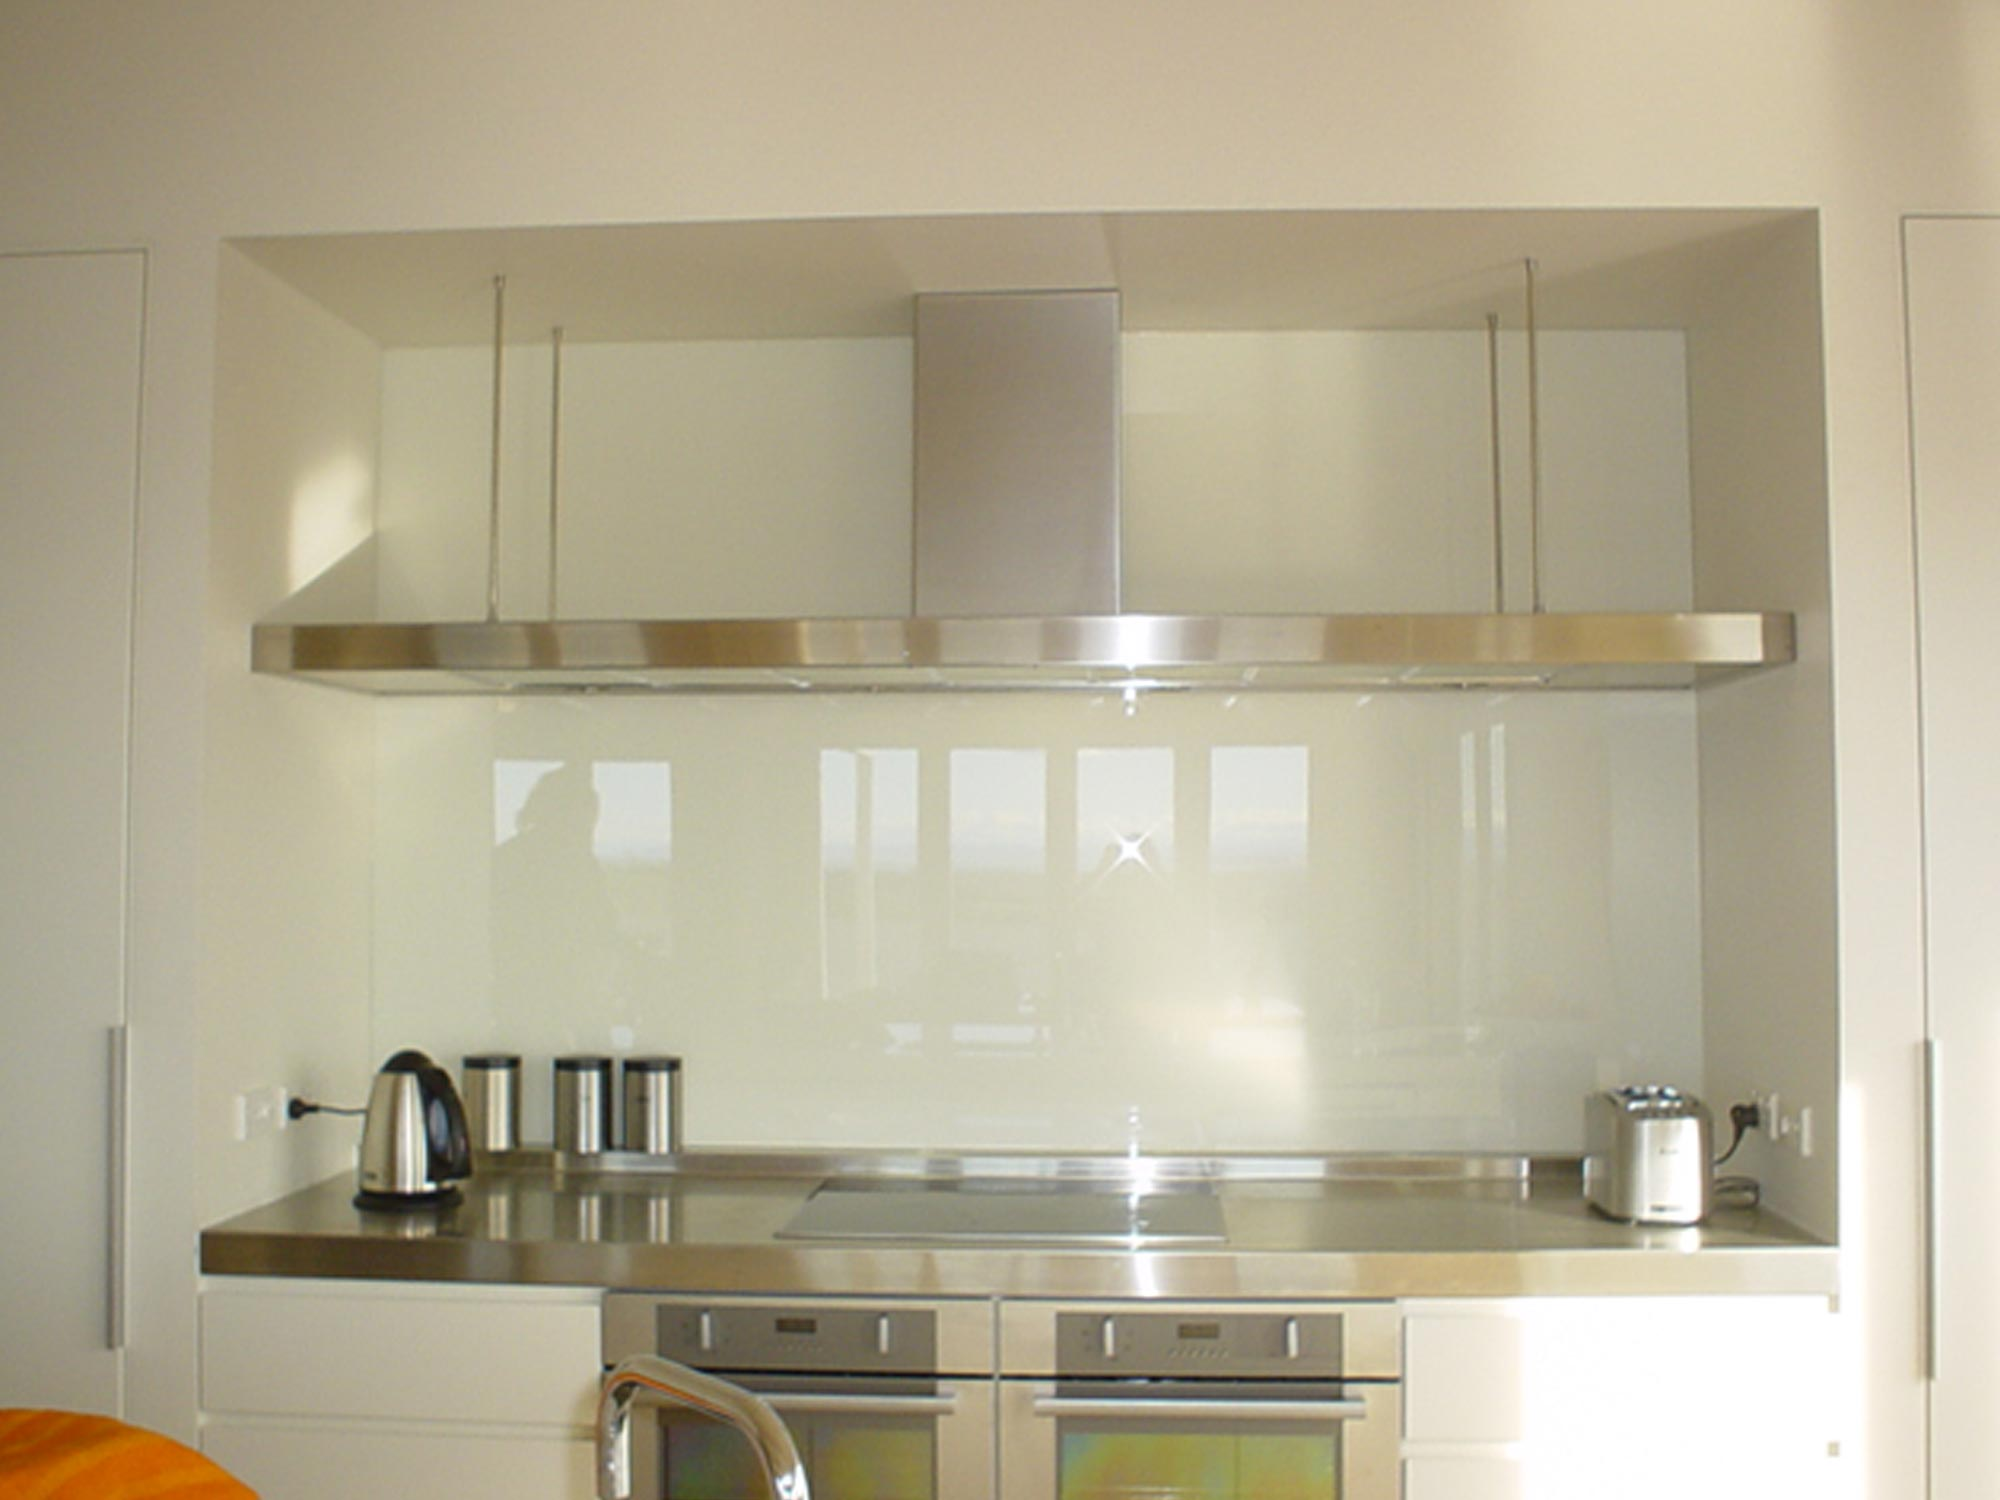 architectural range hoods domestic kitchen